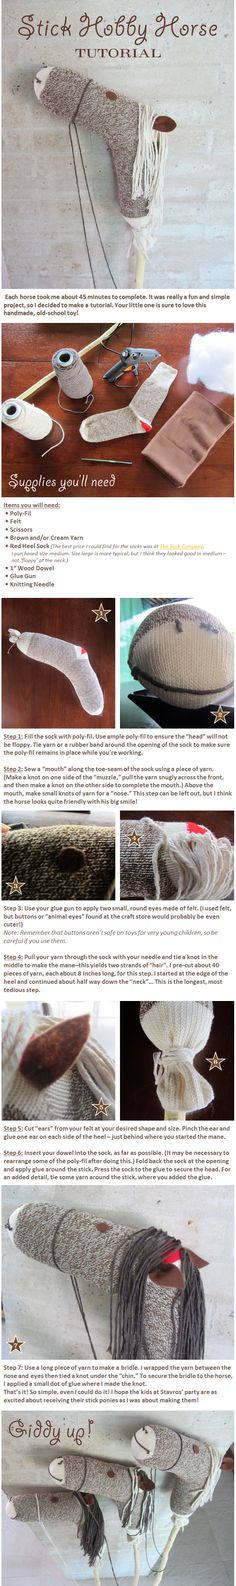 Hobby stick horse activity tutorial for western birthday party theme. Horse Birthday Parties, Cowboy Birthday Party, Farm Birthday, Birthday Party Themes, Birthday Ideas, Rodeo Party, Horse Party, Cowgirl Party, Fete Laurent